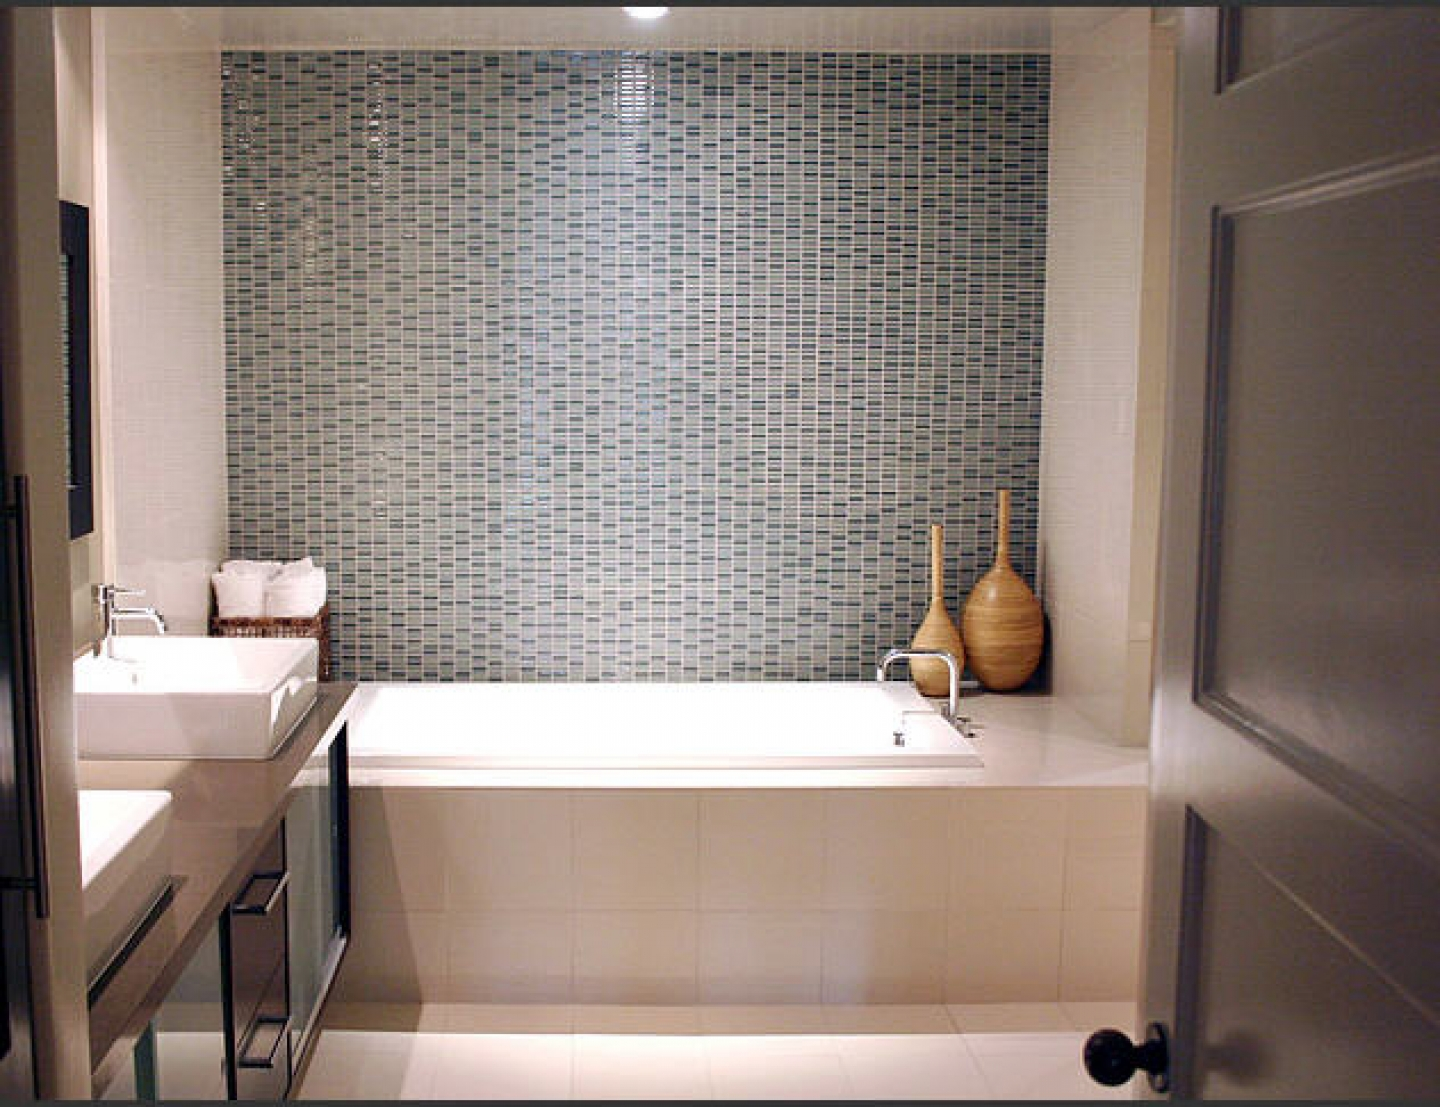 Contemporary Small Bathroom Design 30 Magnificent Ideas And Pictures Of 1950s Bathroom Tiles